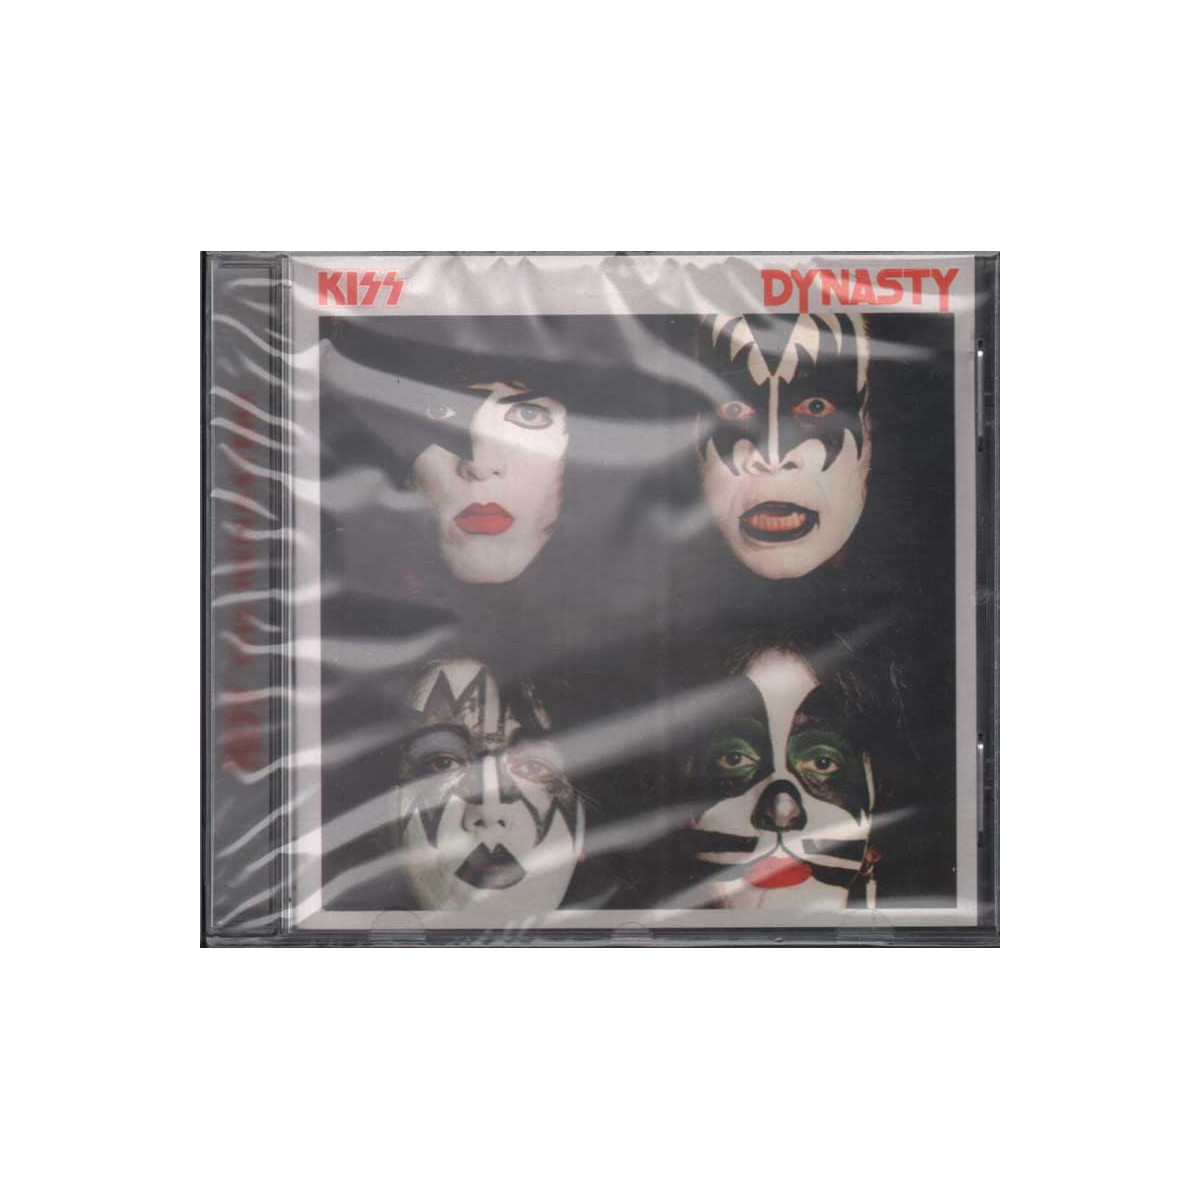 Kiss - CD Dynasty Nuovo Sigillato 0731453238824